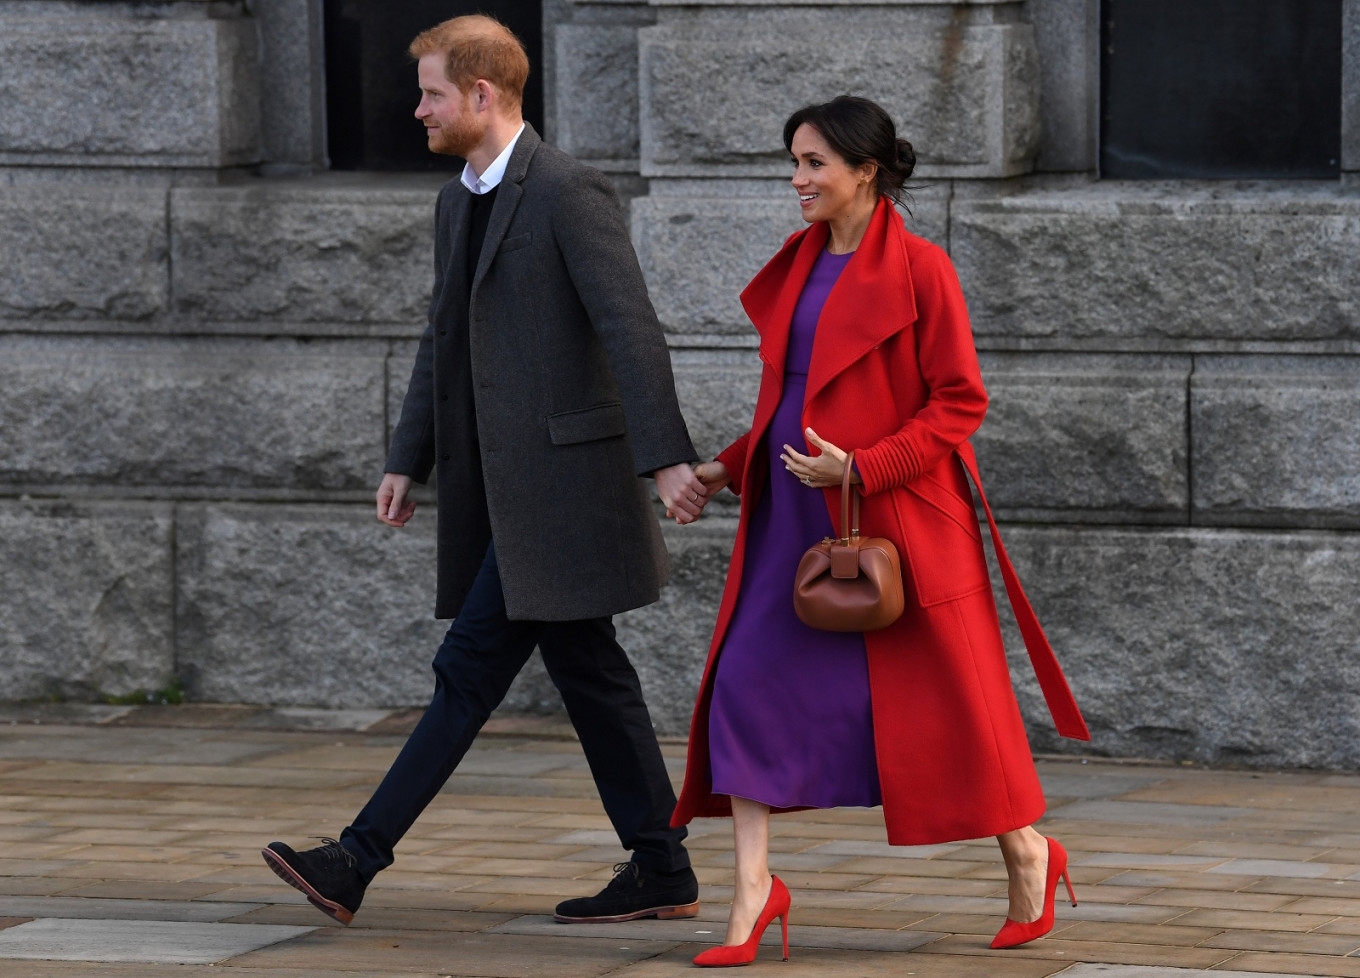 Royal but regular: Will Harry and Meghan seek 'normality' for their baby?